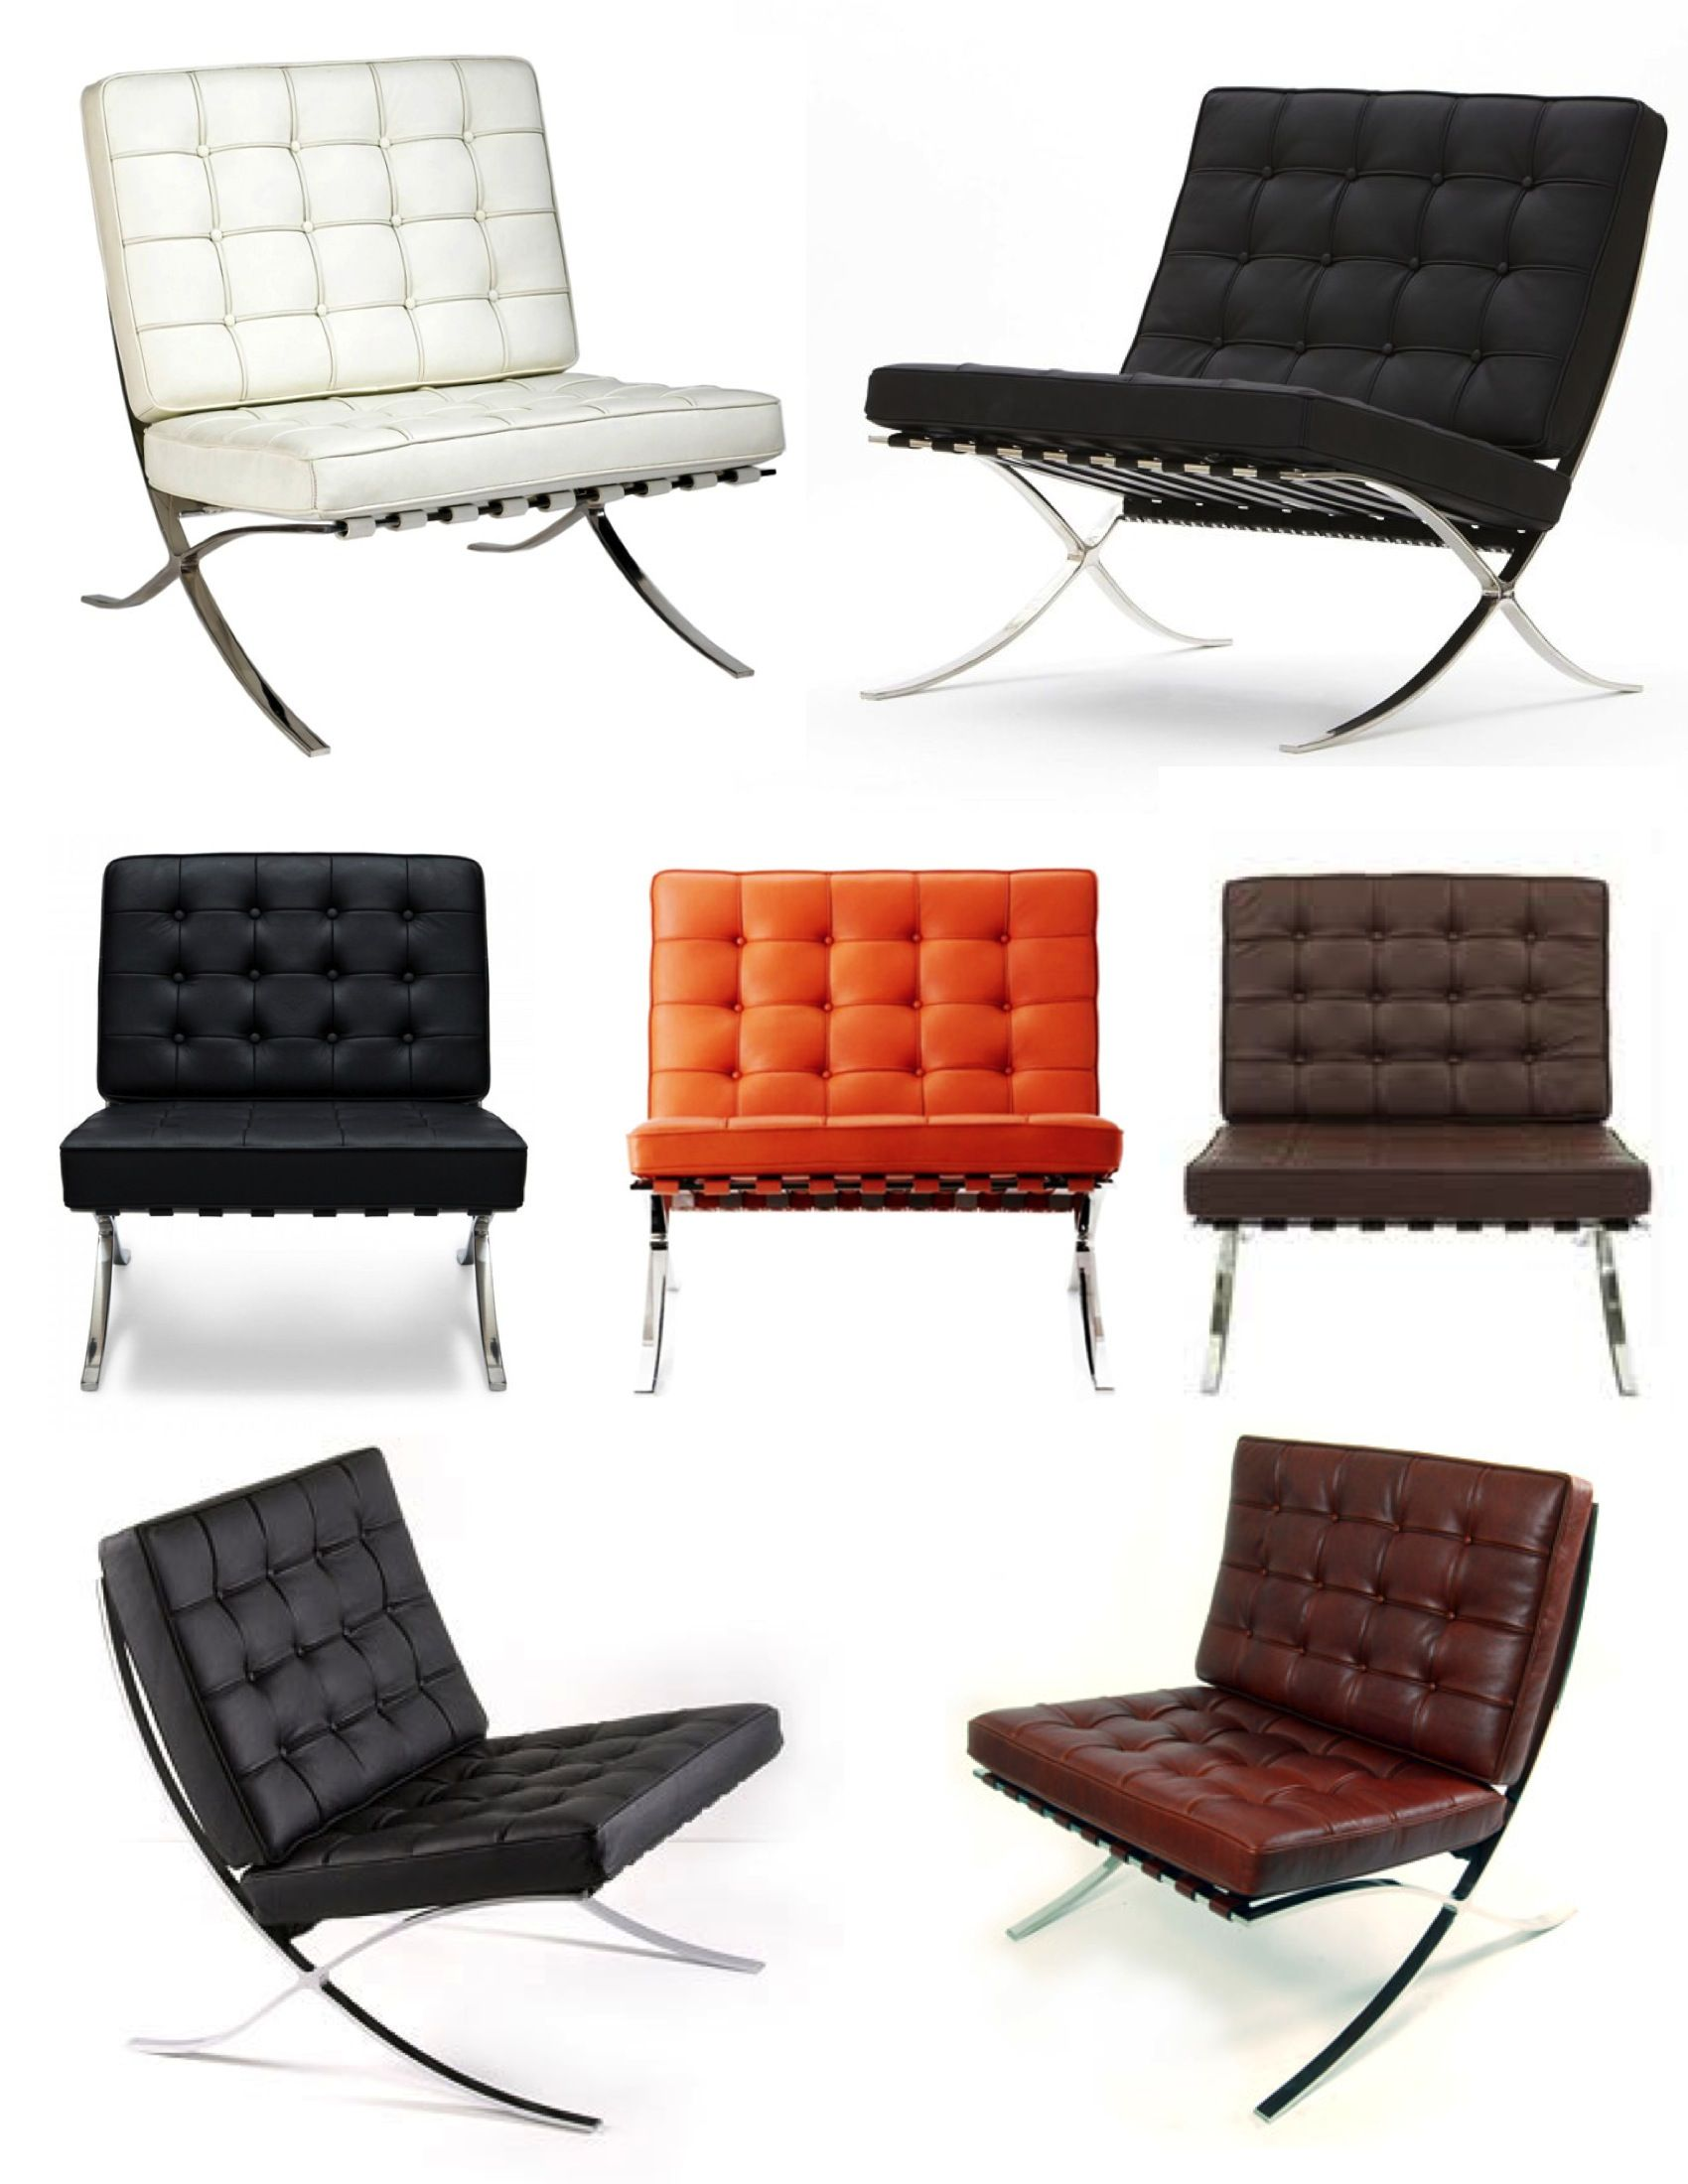 Barcelona Chair Used Home Office Desk Chairs Iconic Modern Style The Furniture Designers 20th Century Google Search